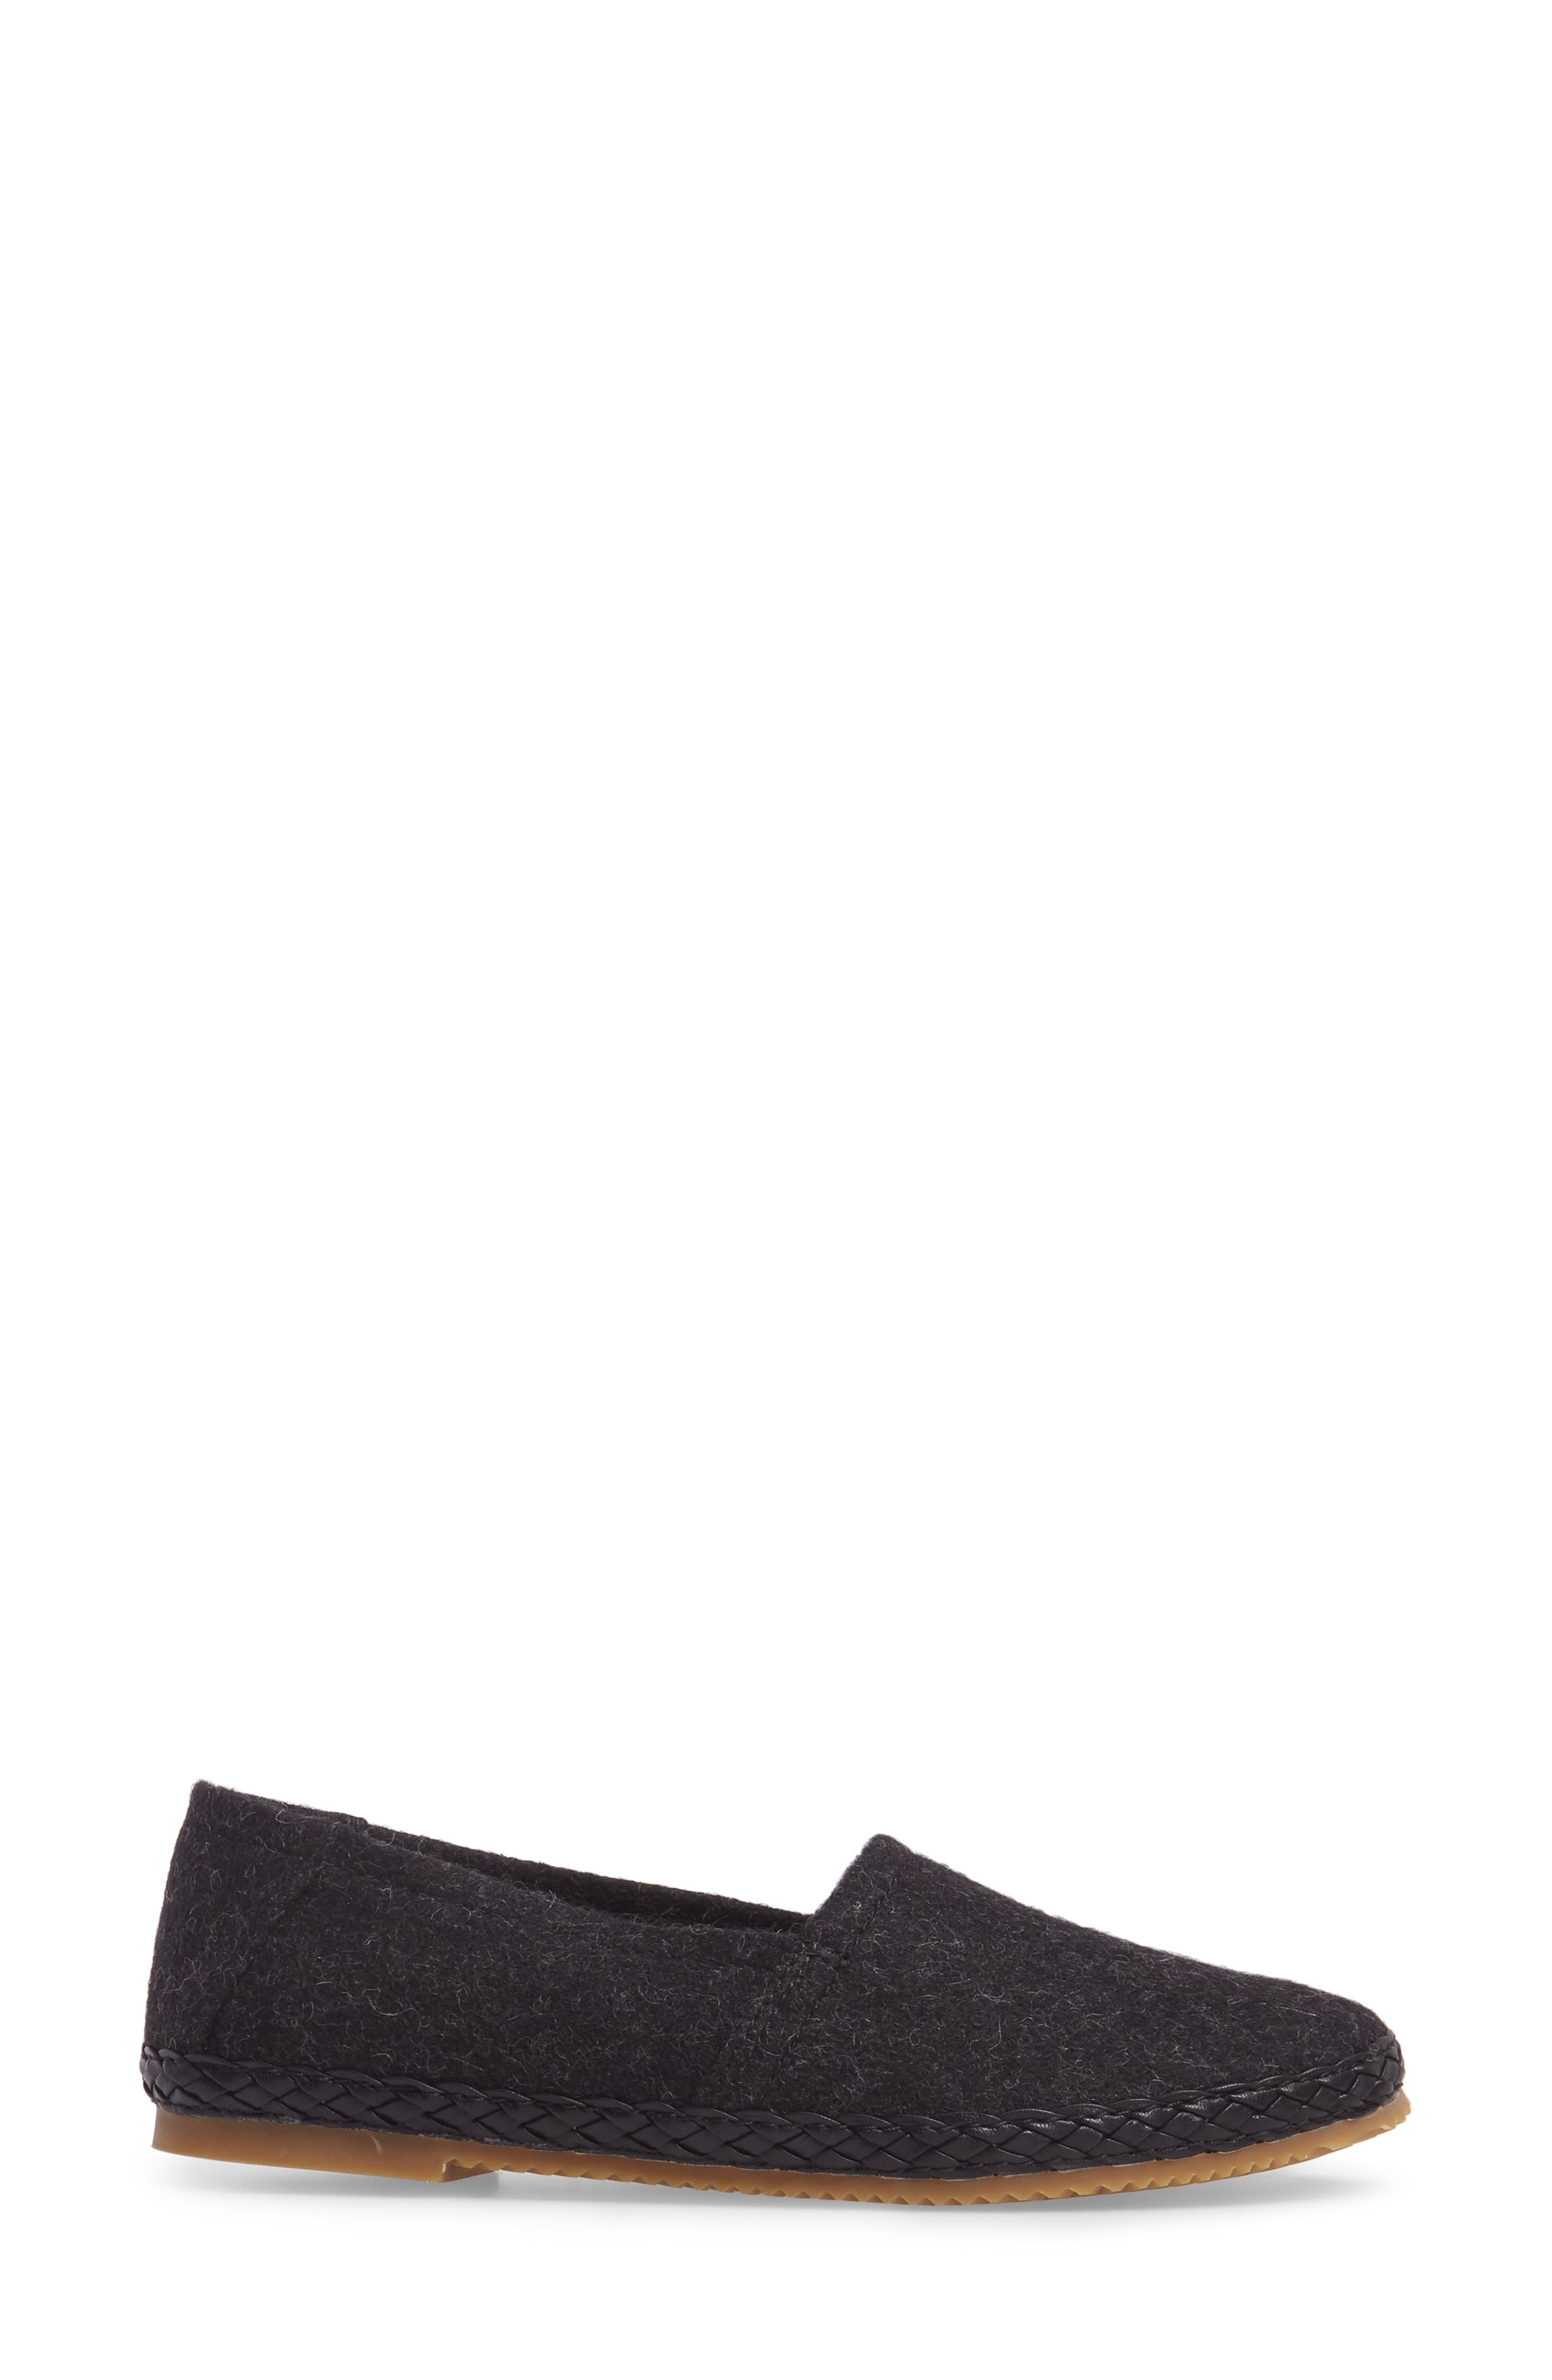 AETREX, Kylie Slip-On, Alternate thumbnail 3, color, BLACK FABRIC